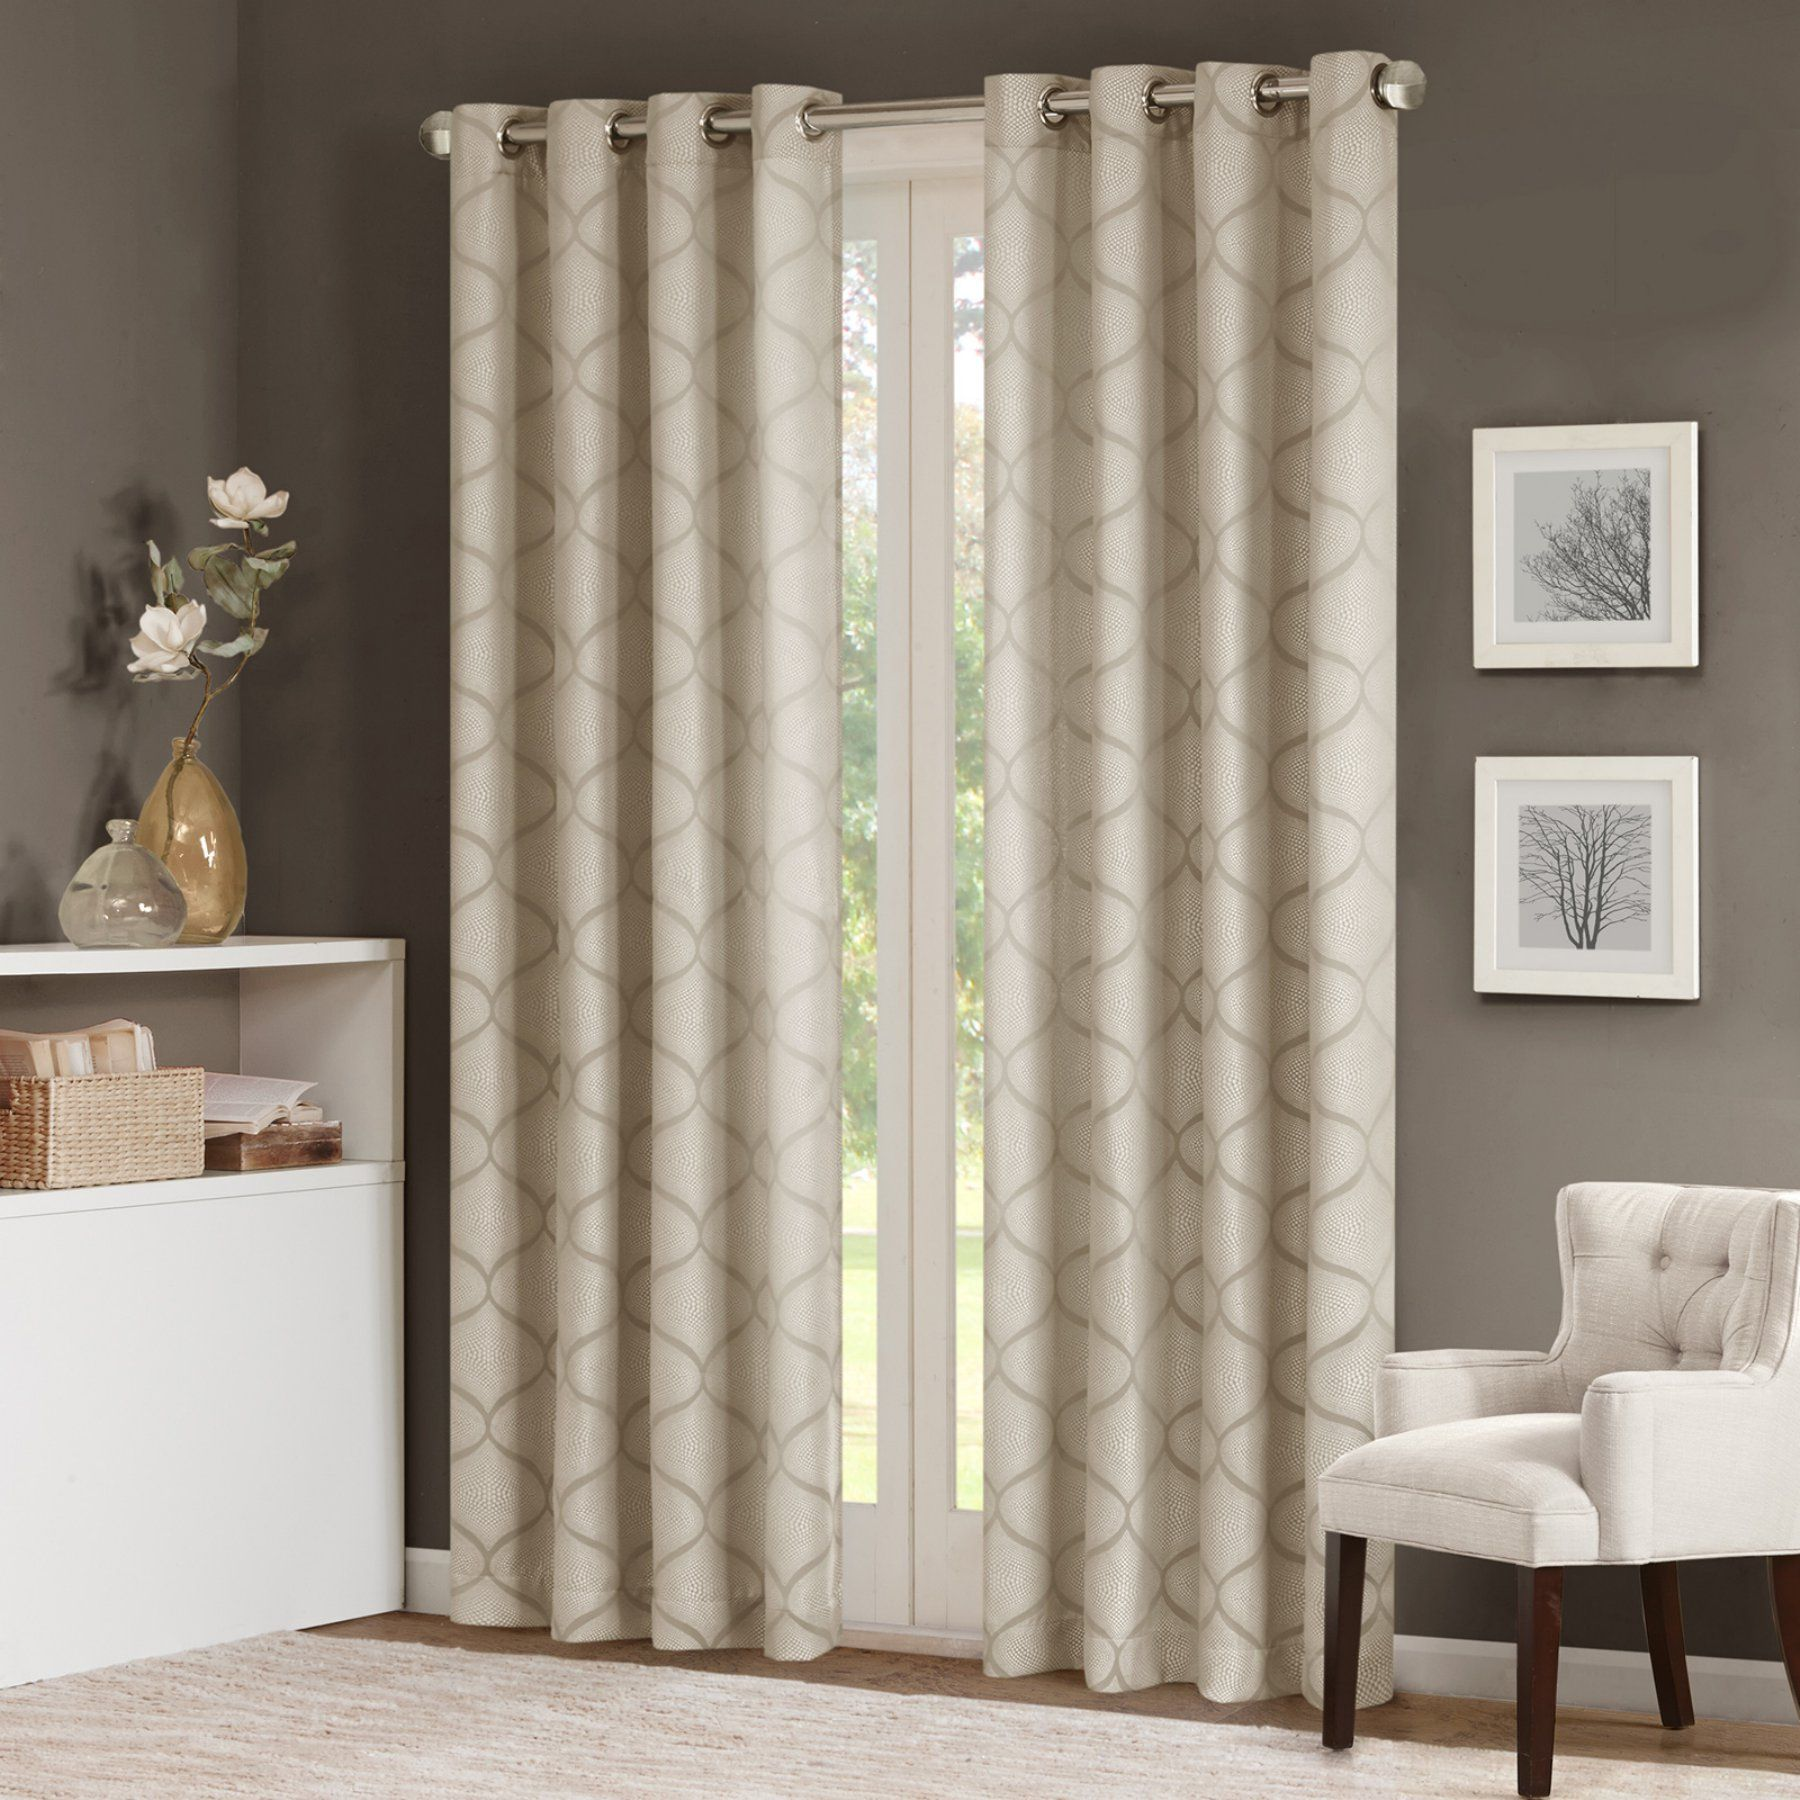 Madison Park Adele Sheer Ogee Jacquard Curtain Panel  Mp40 2091